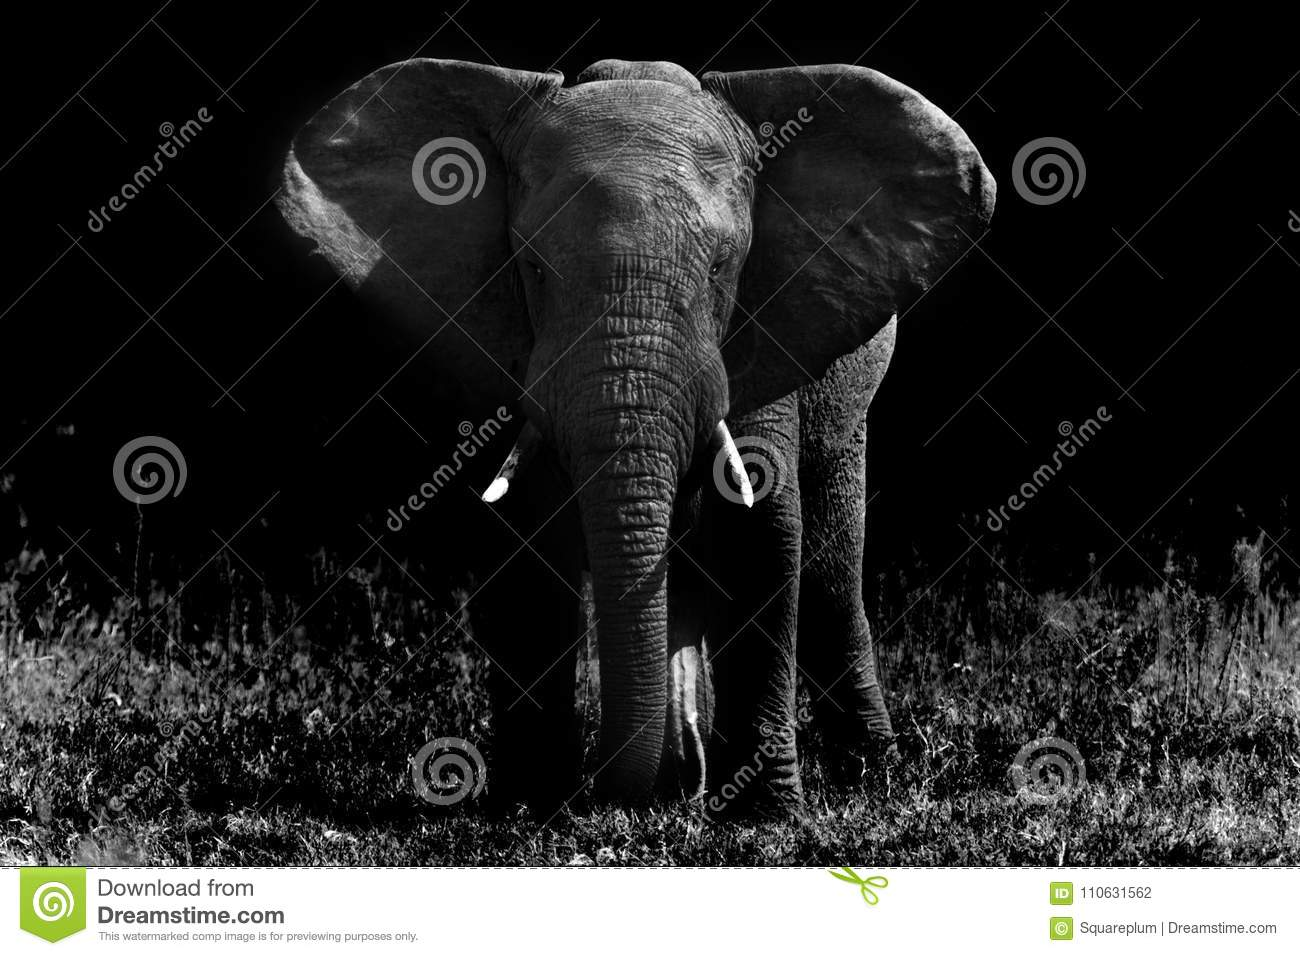 Big elephant in black and white